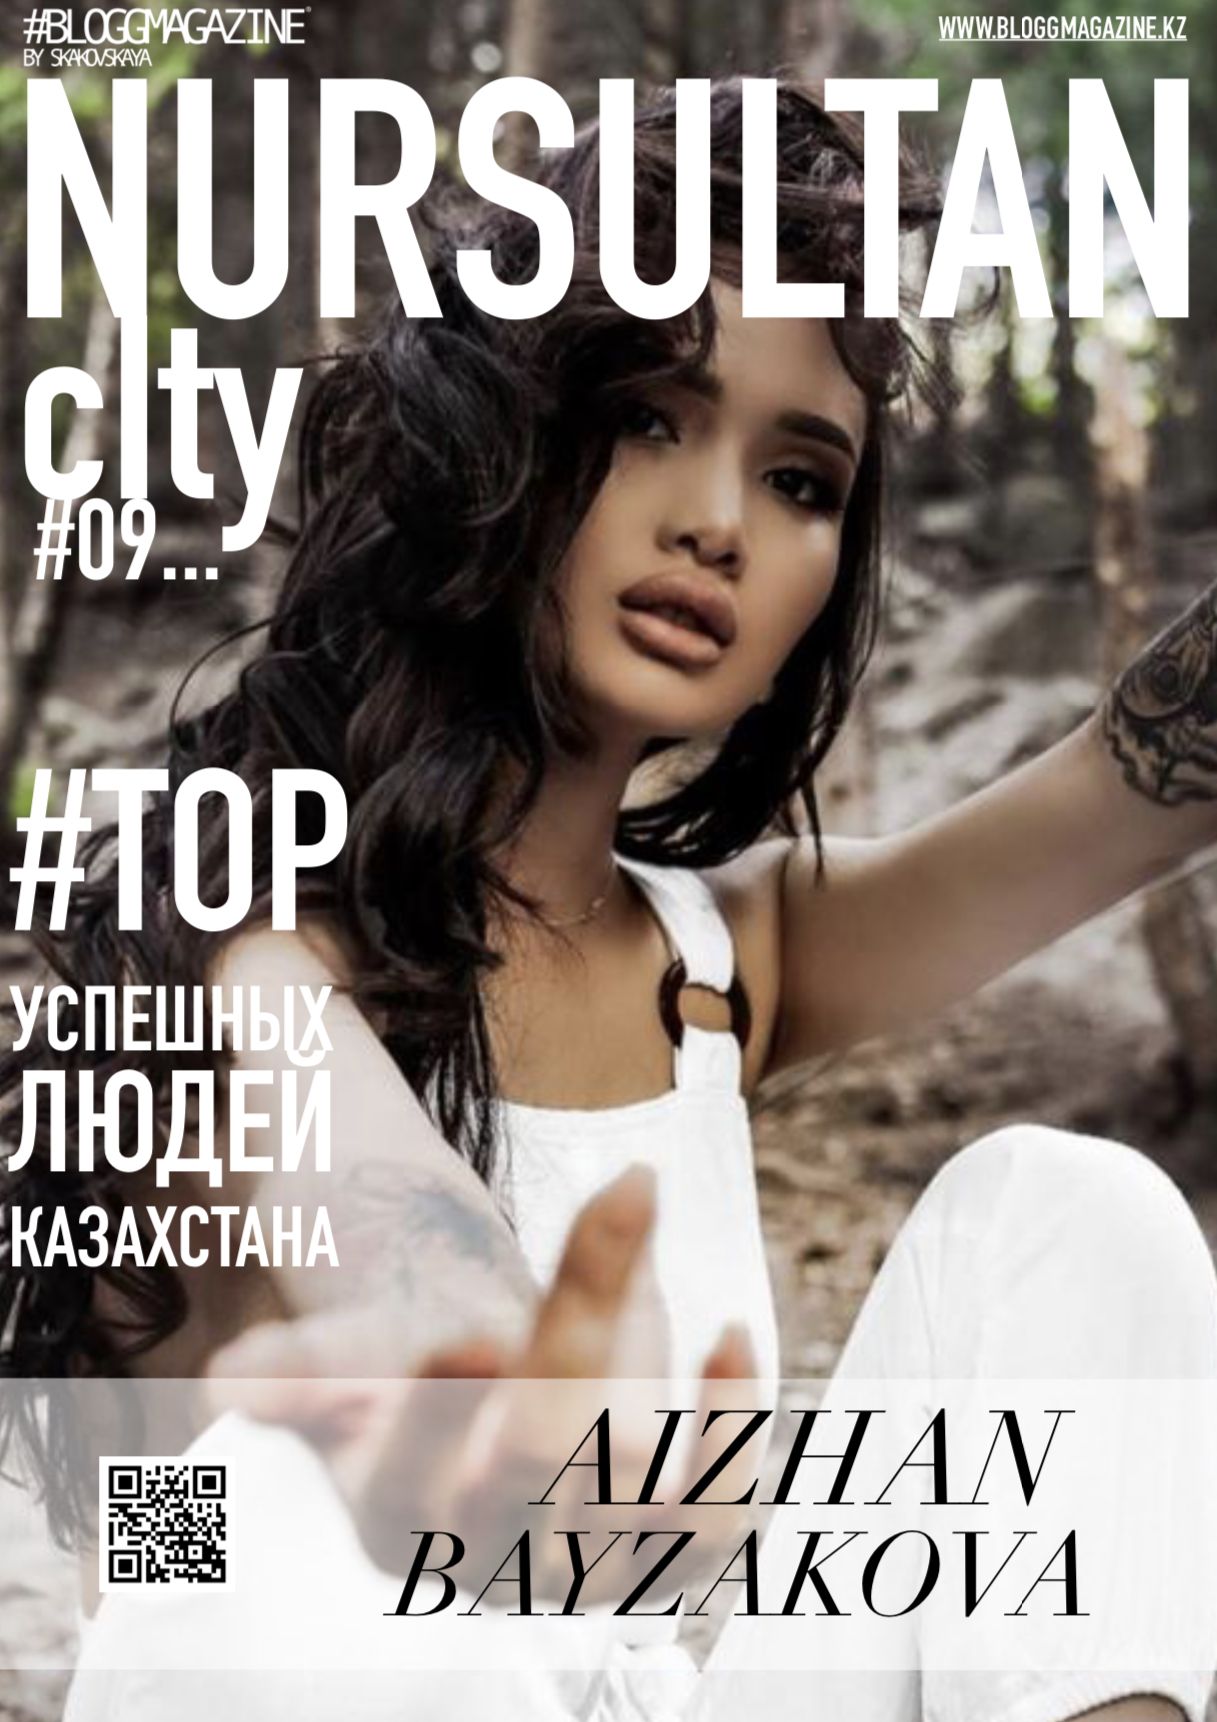 09 NURSULTAN city, #BLOGGMAGAZINE